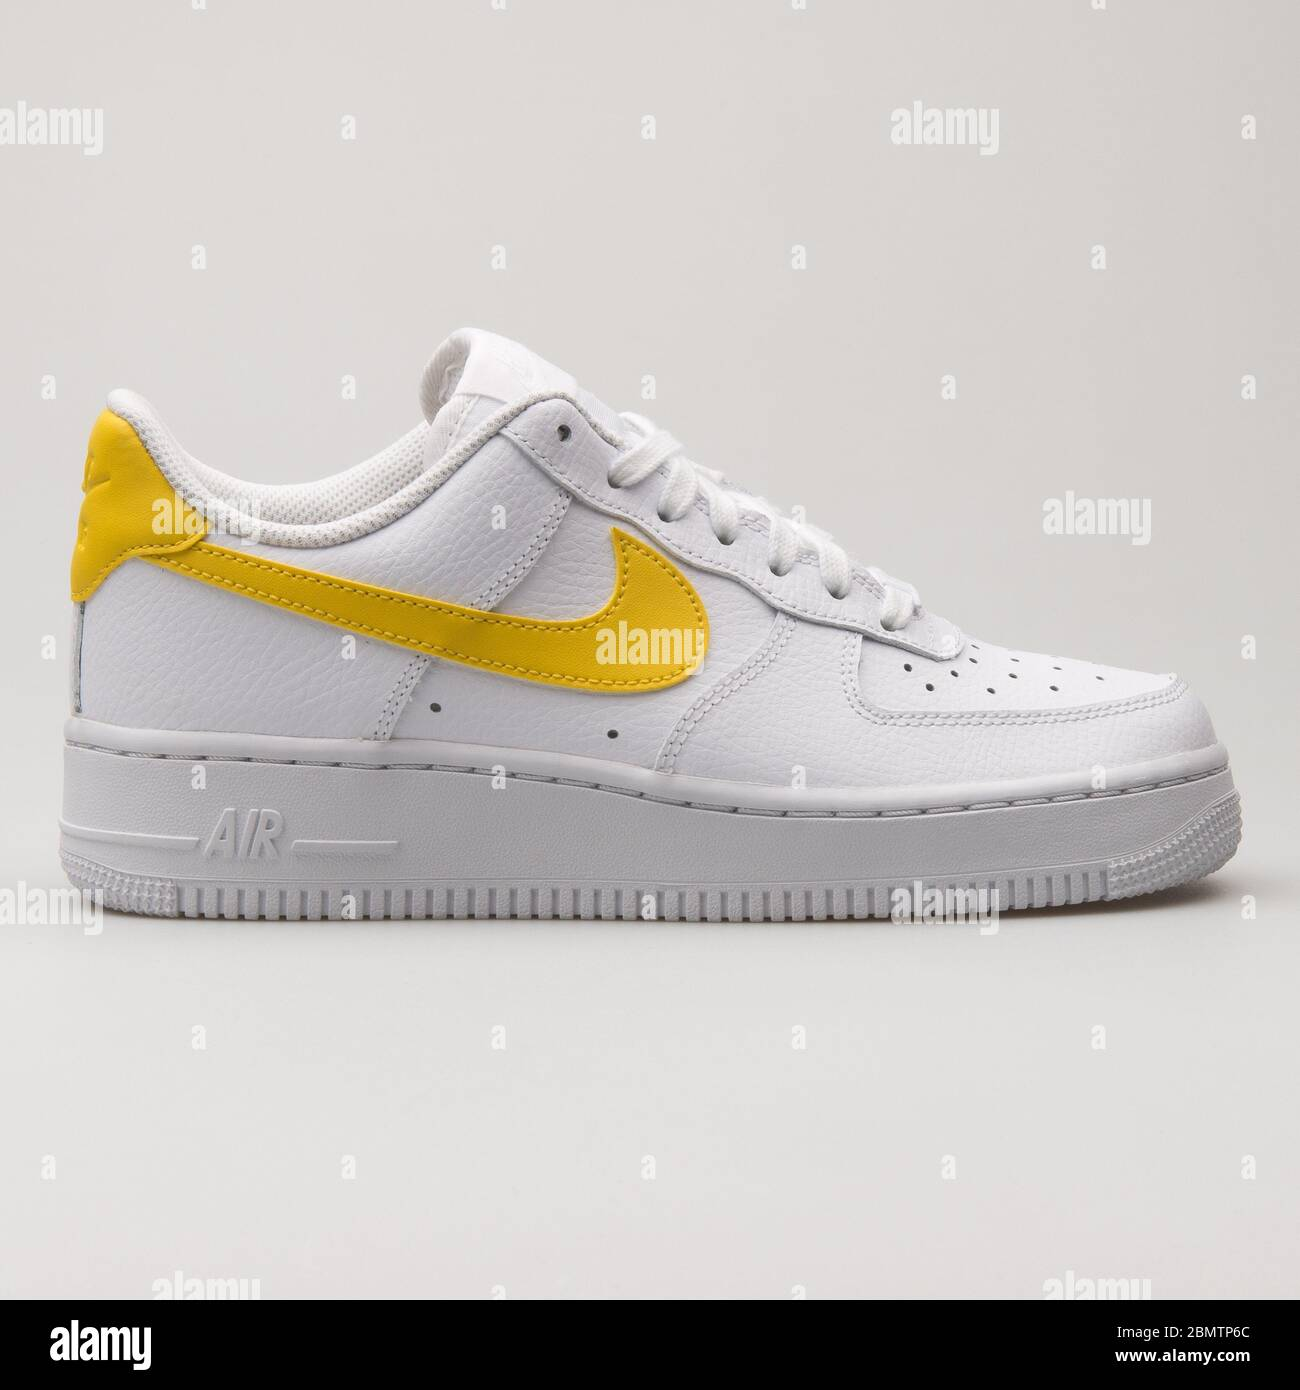 Geometría sátira inteligente  VIENNA, AUSTRIA - FEBRUARY 19, 2018: Nike Air Force 1 07 white and yellow  sneaker on white background Stock Photo - Alamy